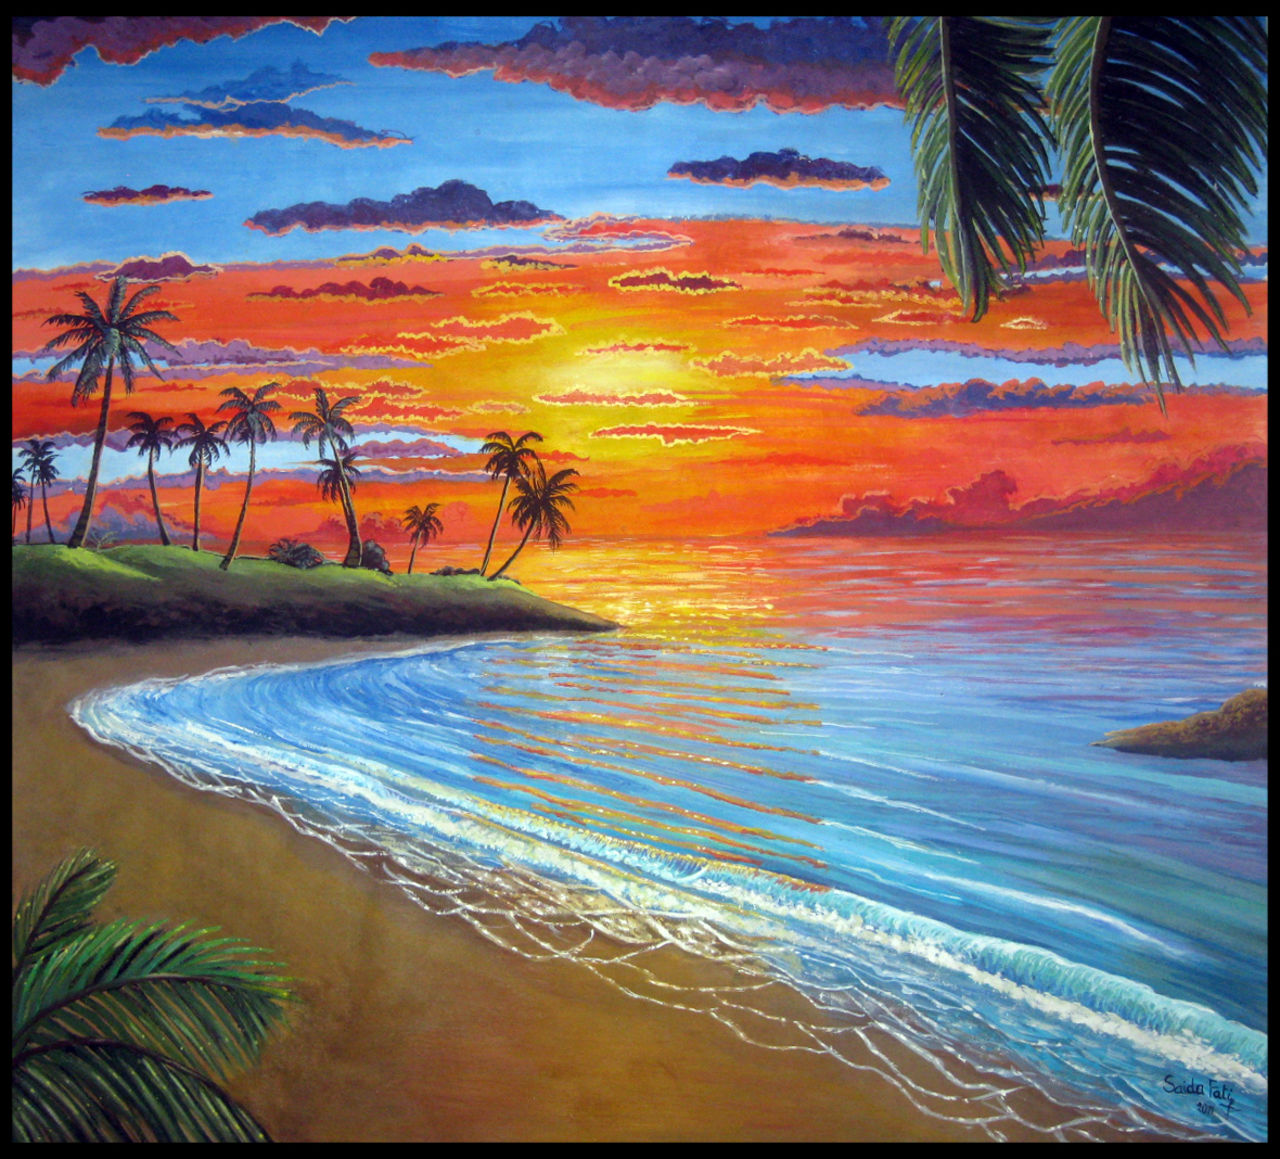 fati saida  سعيدة فاتي painting:sunset  _ coucher de soleil